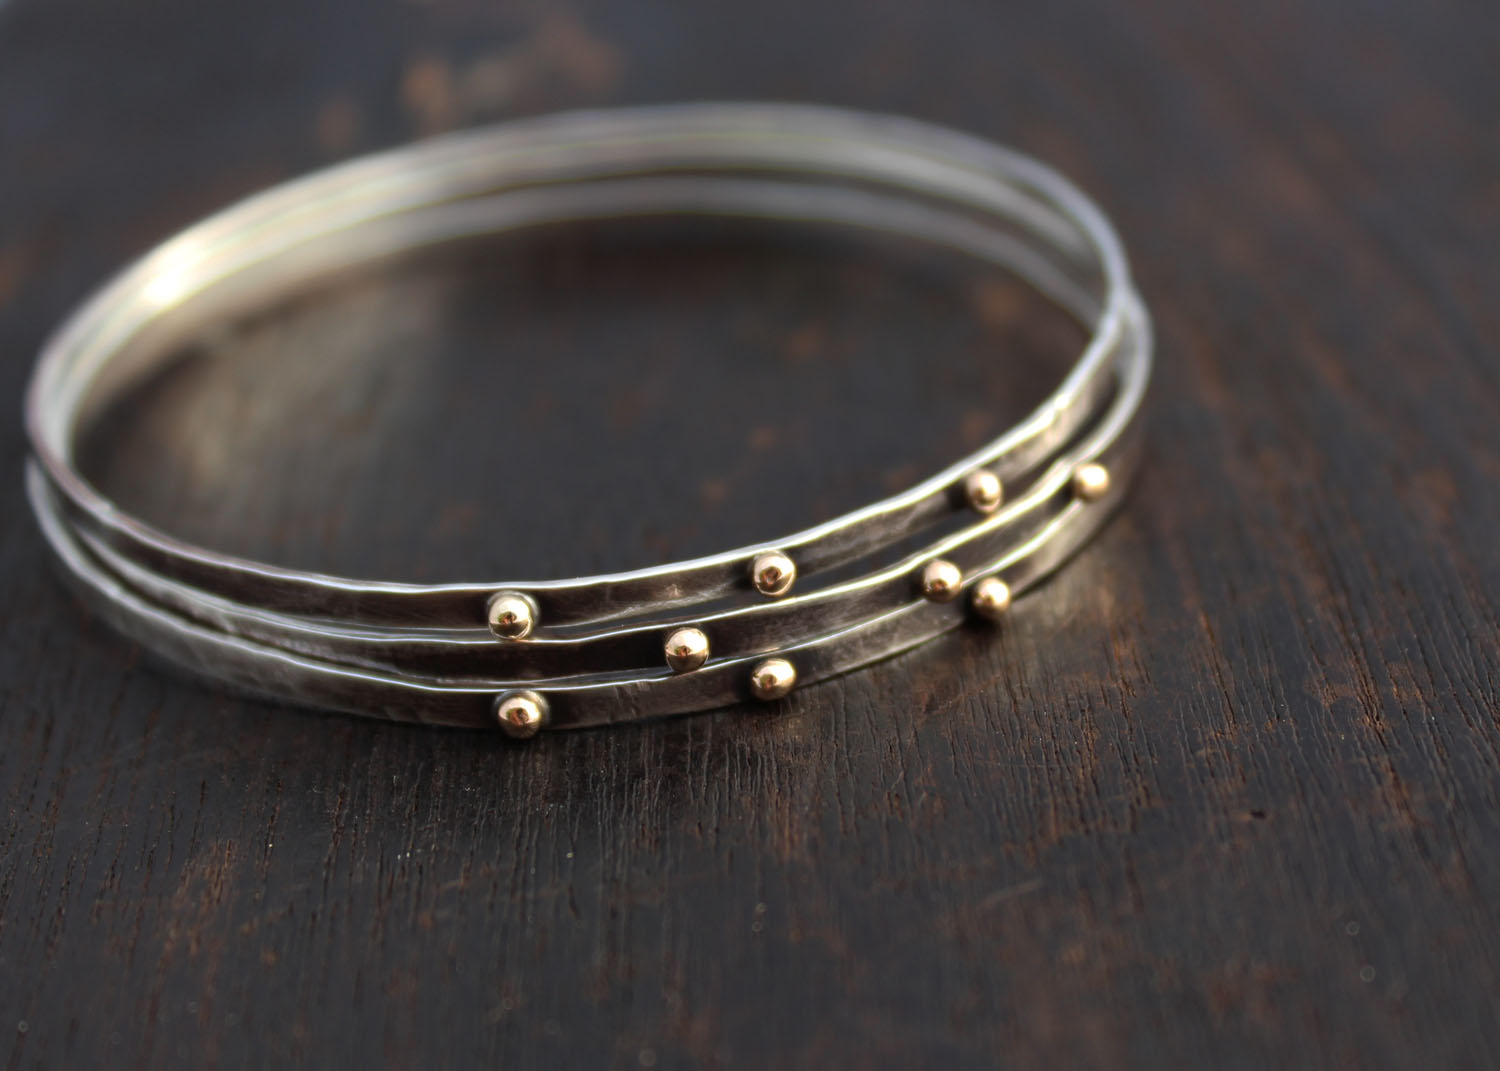 set silver gold and bangle bracelet sterling solid with k bracelets handmade hoops bangles